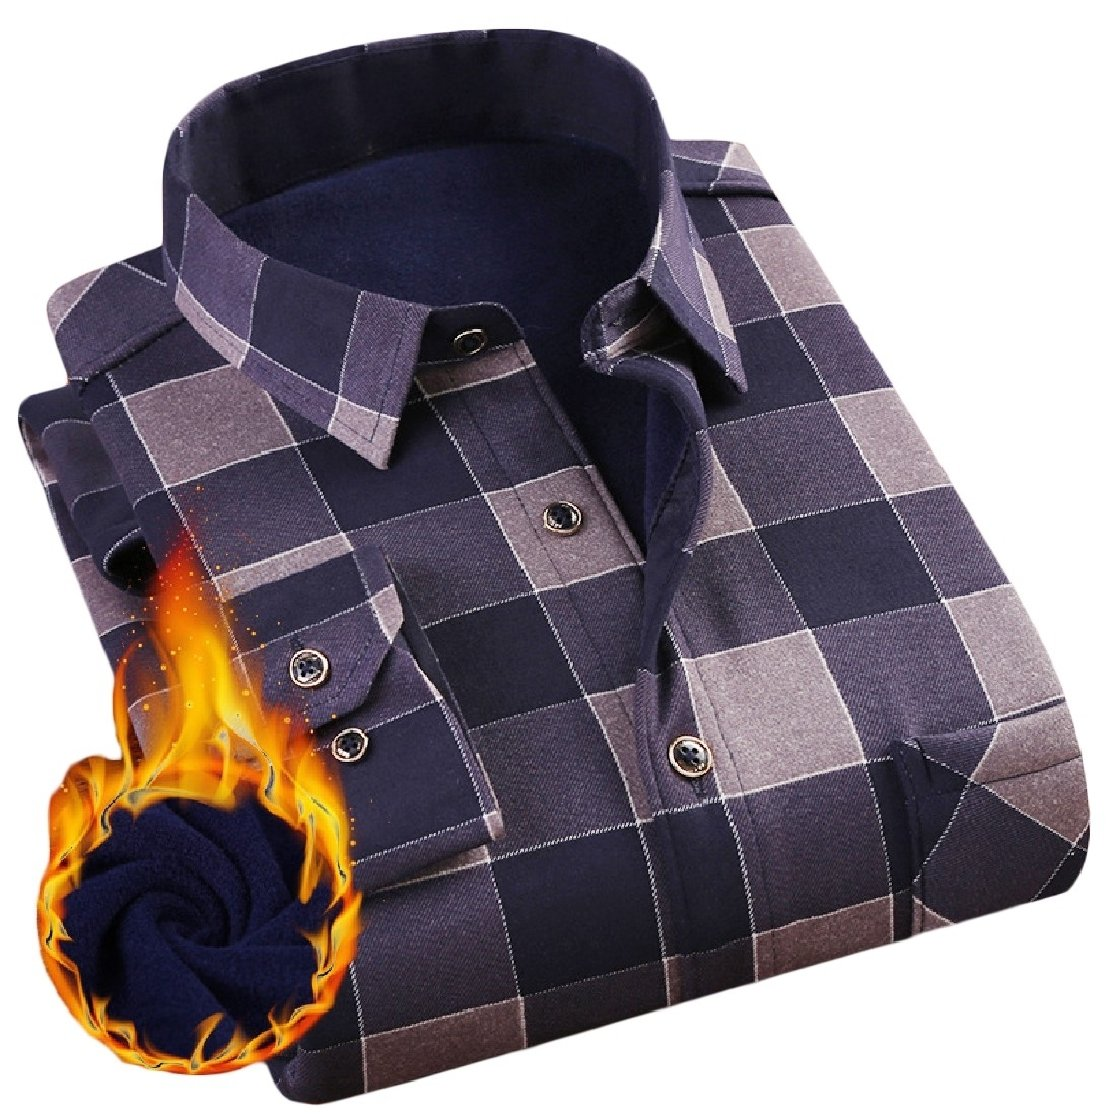 YUNY Mens Lapel Warm Long Sleeve Buttons Flannel Printing Thicken Dress Shirt AS13 2XL